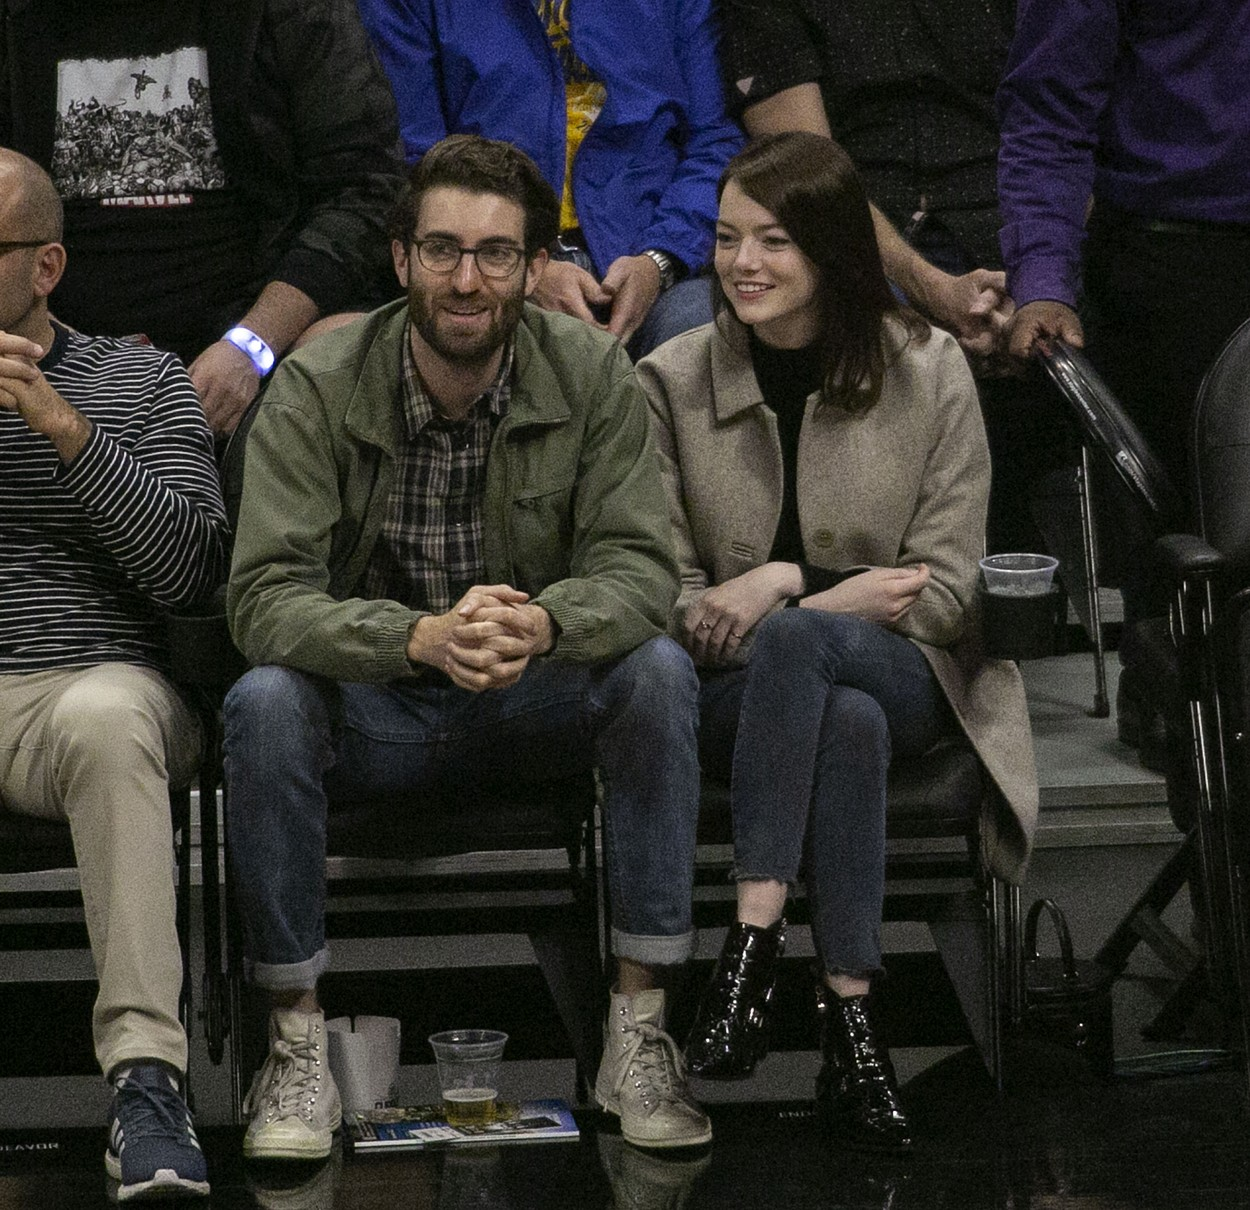 December 4, 2019, Los Angeles, California, United States of America: Actress Emma Stone and her boyfriend filmmaker, Dave McCary announced their engagement. FILE PHOTO: Dave McCary and Emma Stone attend the NBA game between the Los Angeles Clippers and the Golden State Warriors on Friday January 18, 2019 at the Staples Center in Los Angeles, California. ARIANA RUIZ/PI, Image: 486427094, License: Rights-managed, Restrictions: , Model Release: no, Credit line: Ariana Ruiz/Pi / Zuma Press / Profimedia